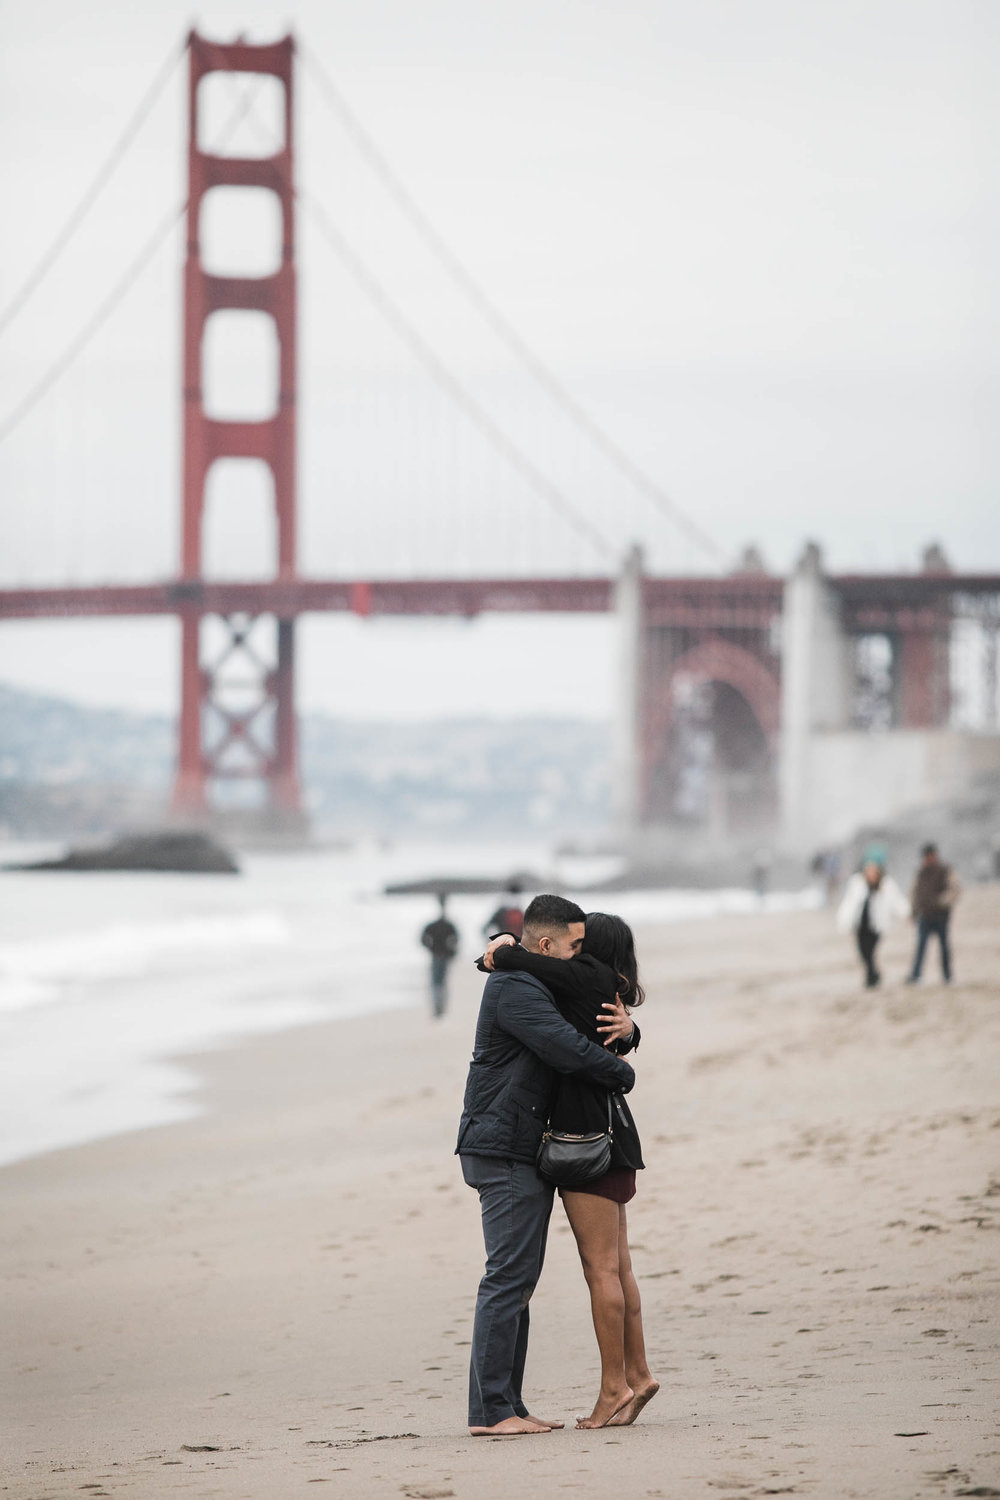 112017_D+S Proposal_Baker Beach_Buena Lane Photography_068.jpg